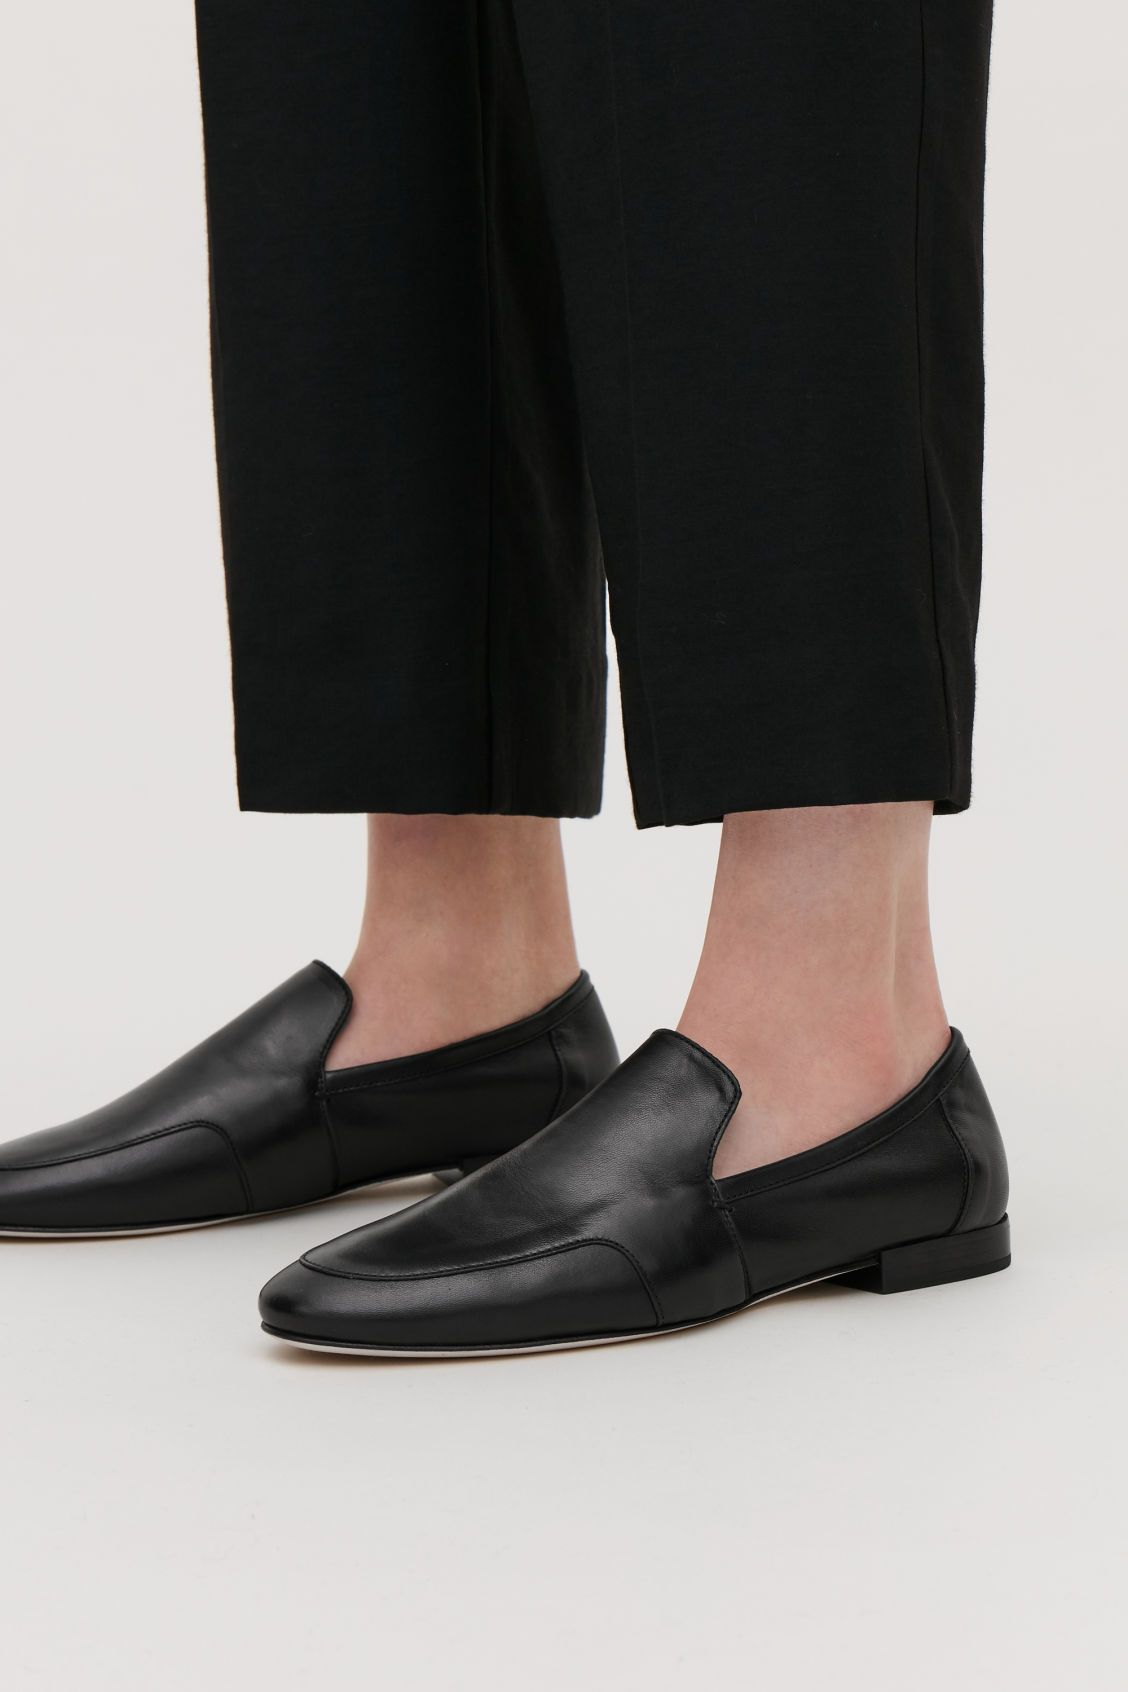 4dc8a8ba04474 SOFT LOAFERS - Black - Shoes - COS   window shopping in 2019   Shoes ...